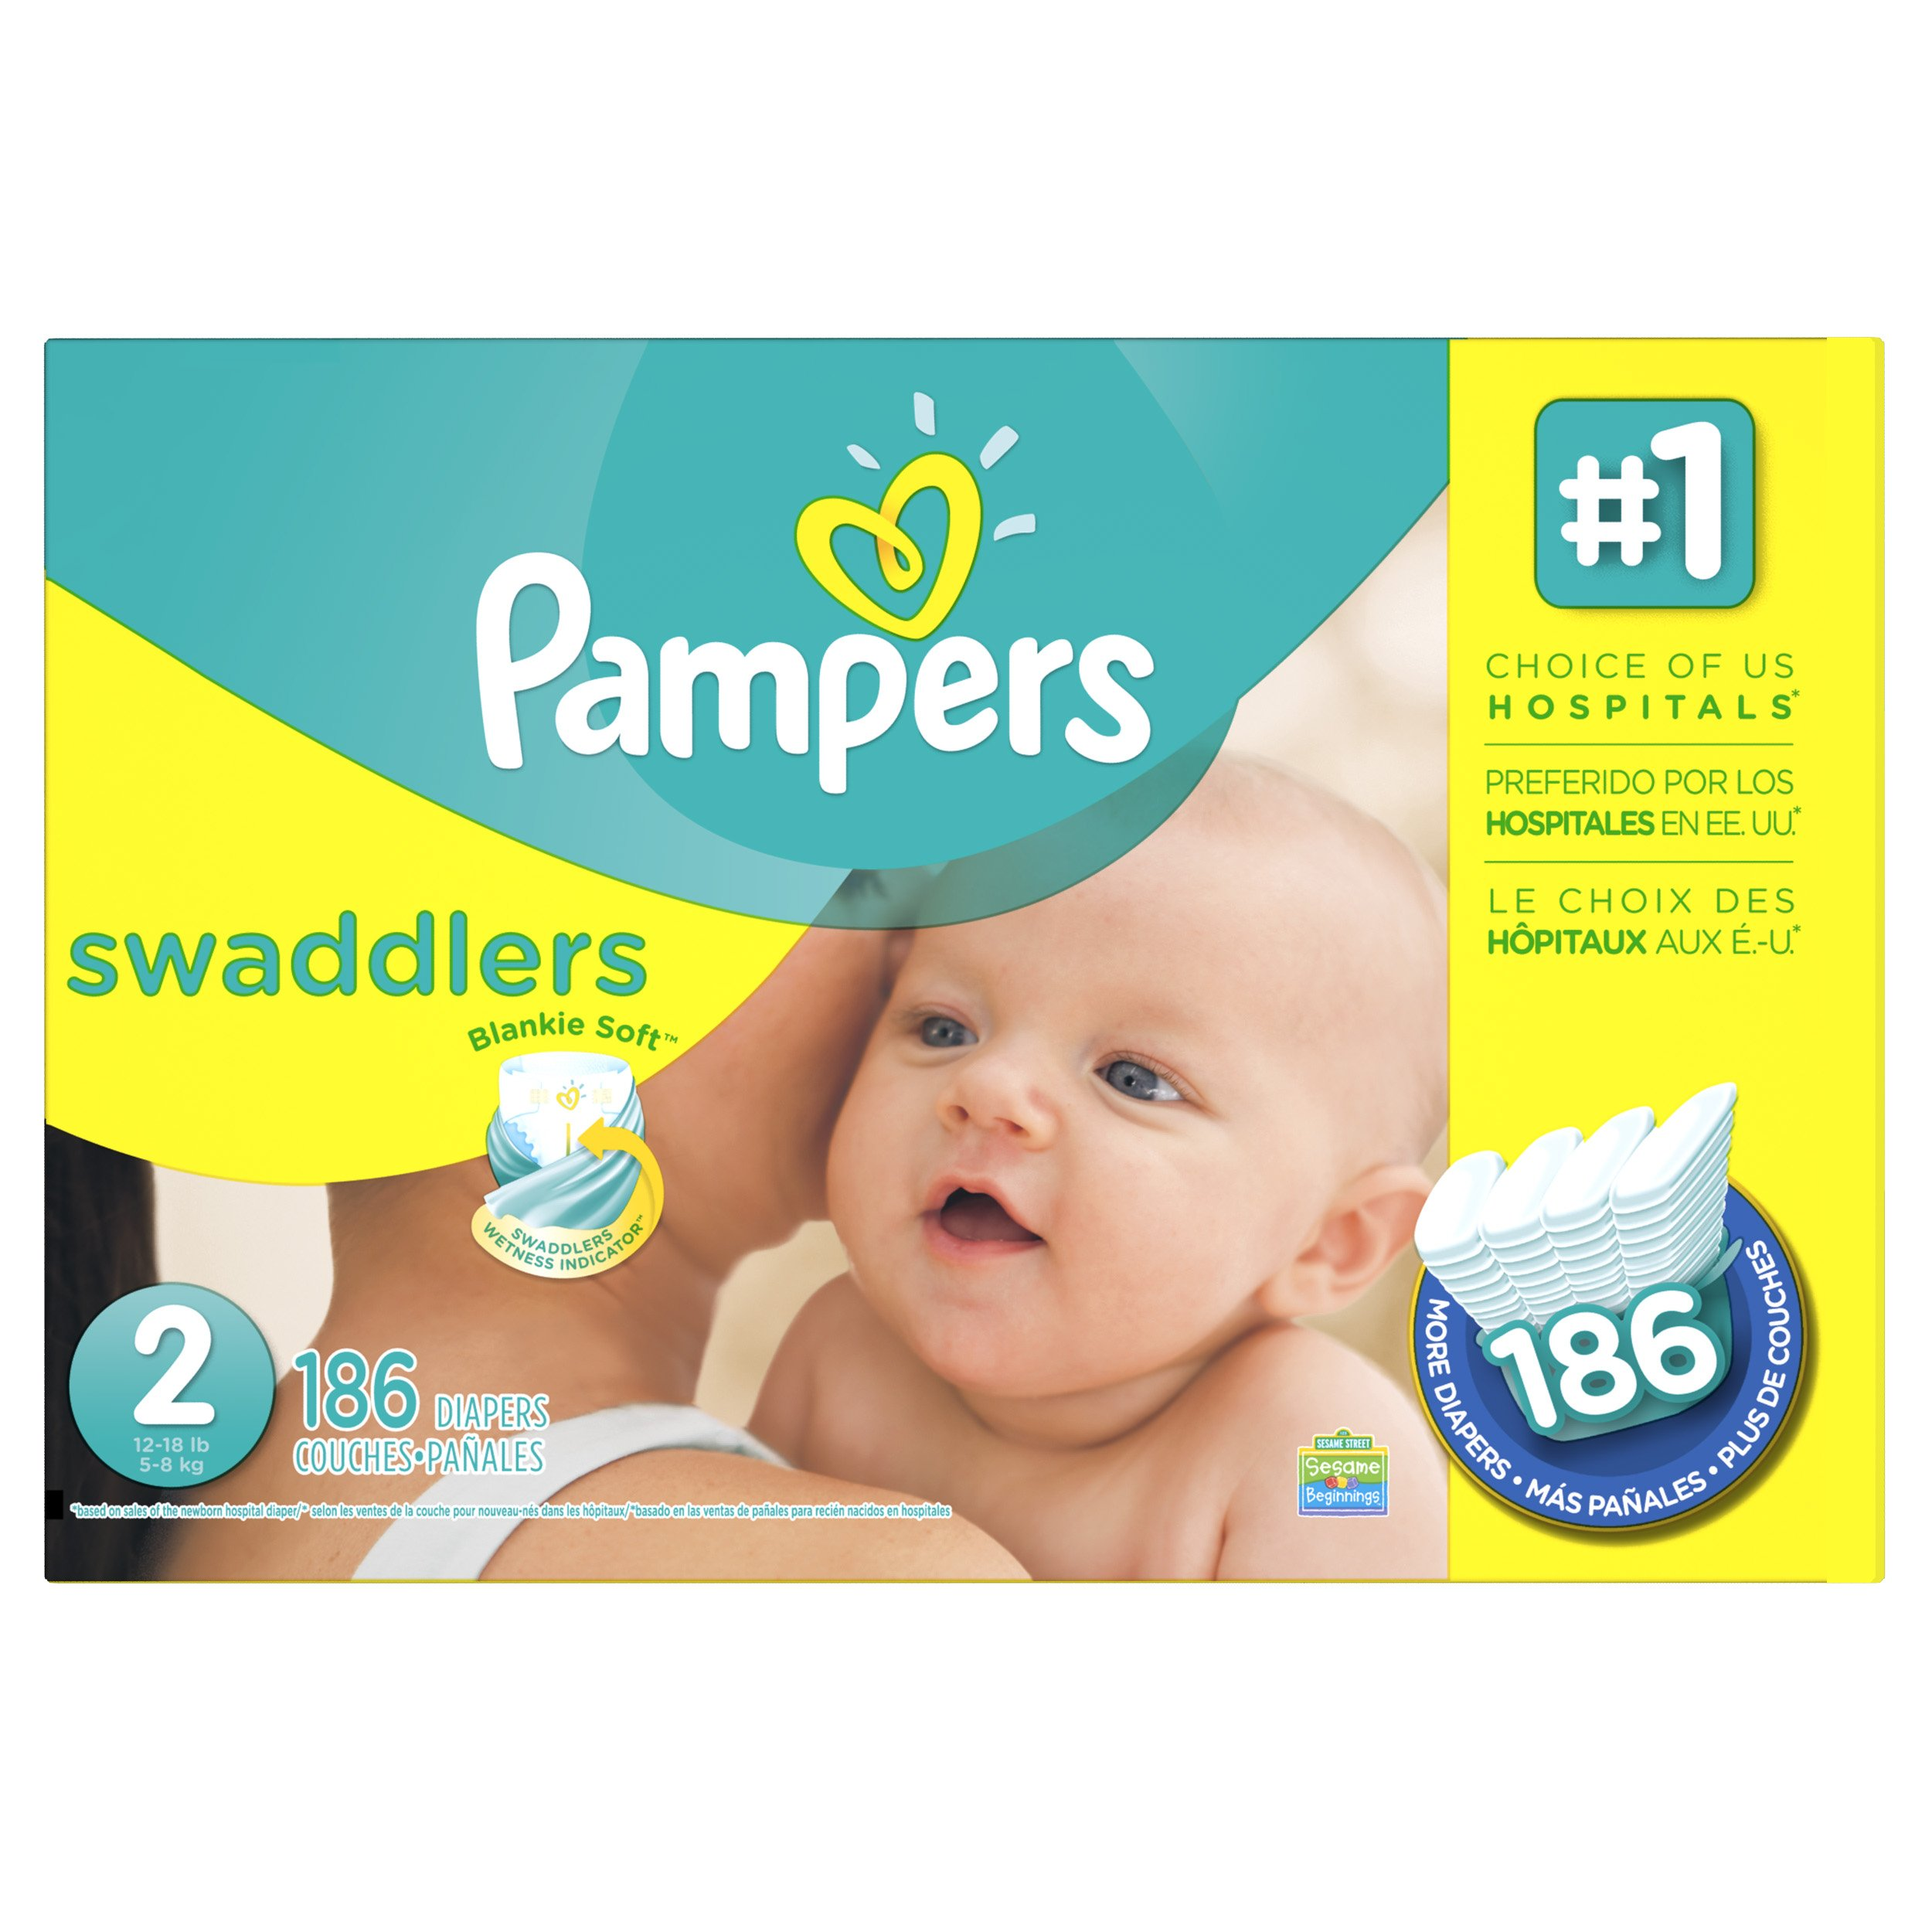 Pampers Swaddlers Diapers Size 2 186 Count (Packaging May Vary) by Pampers